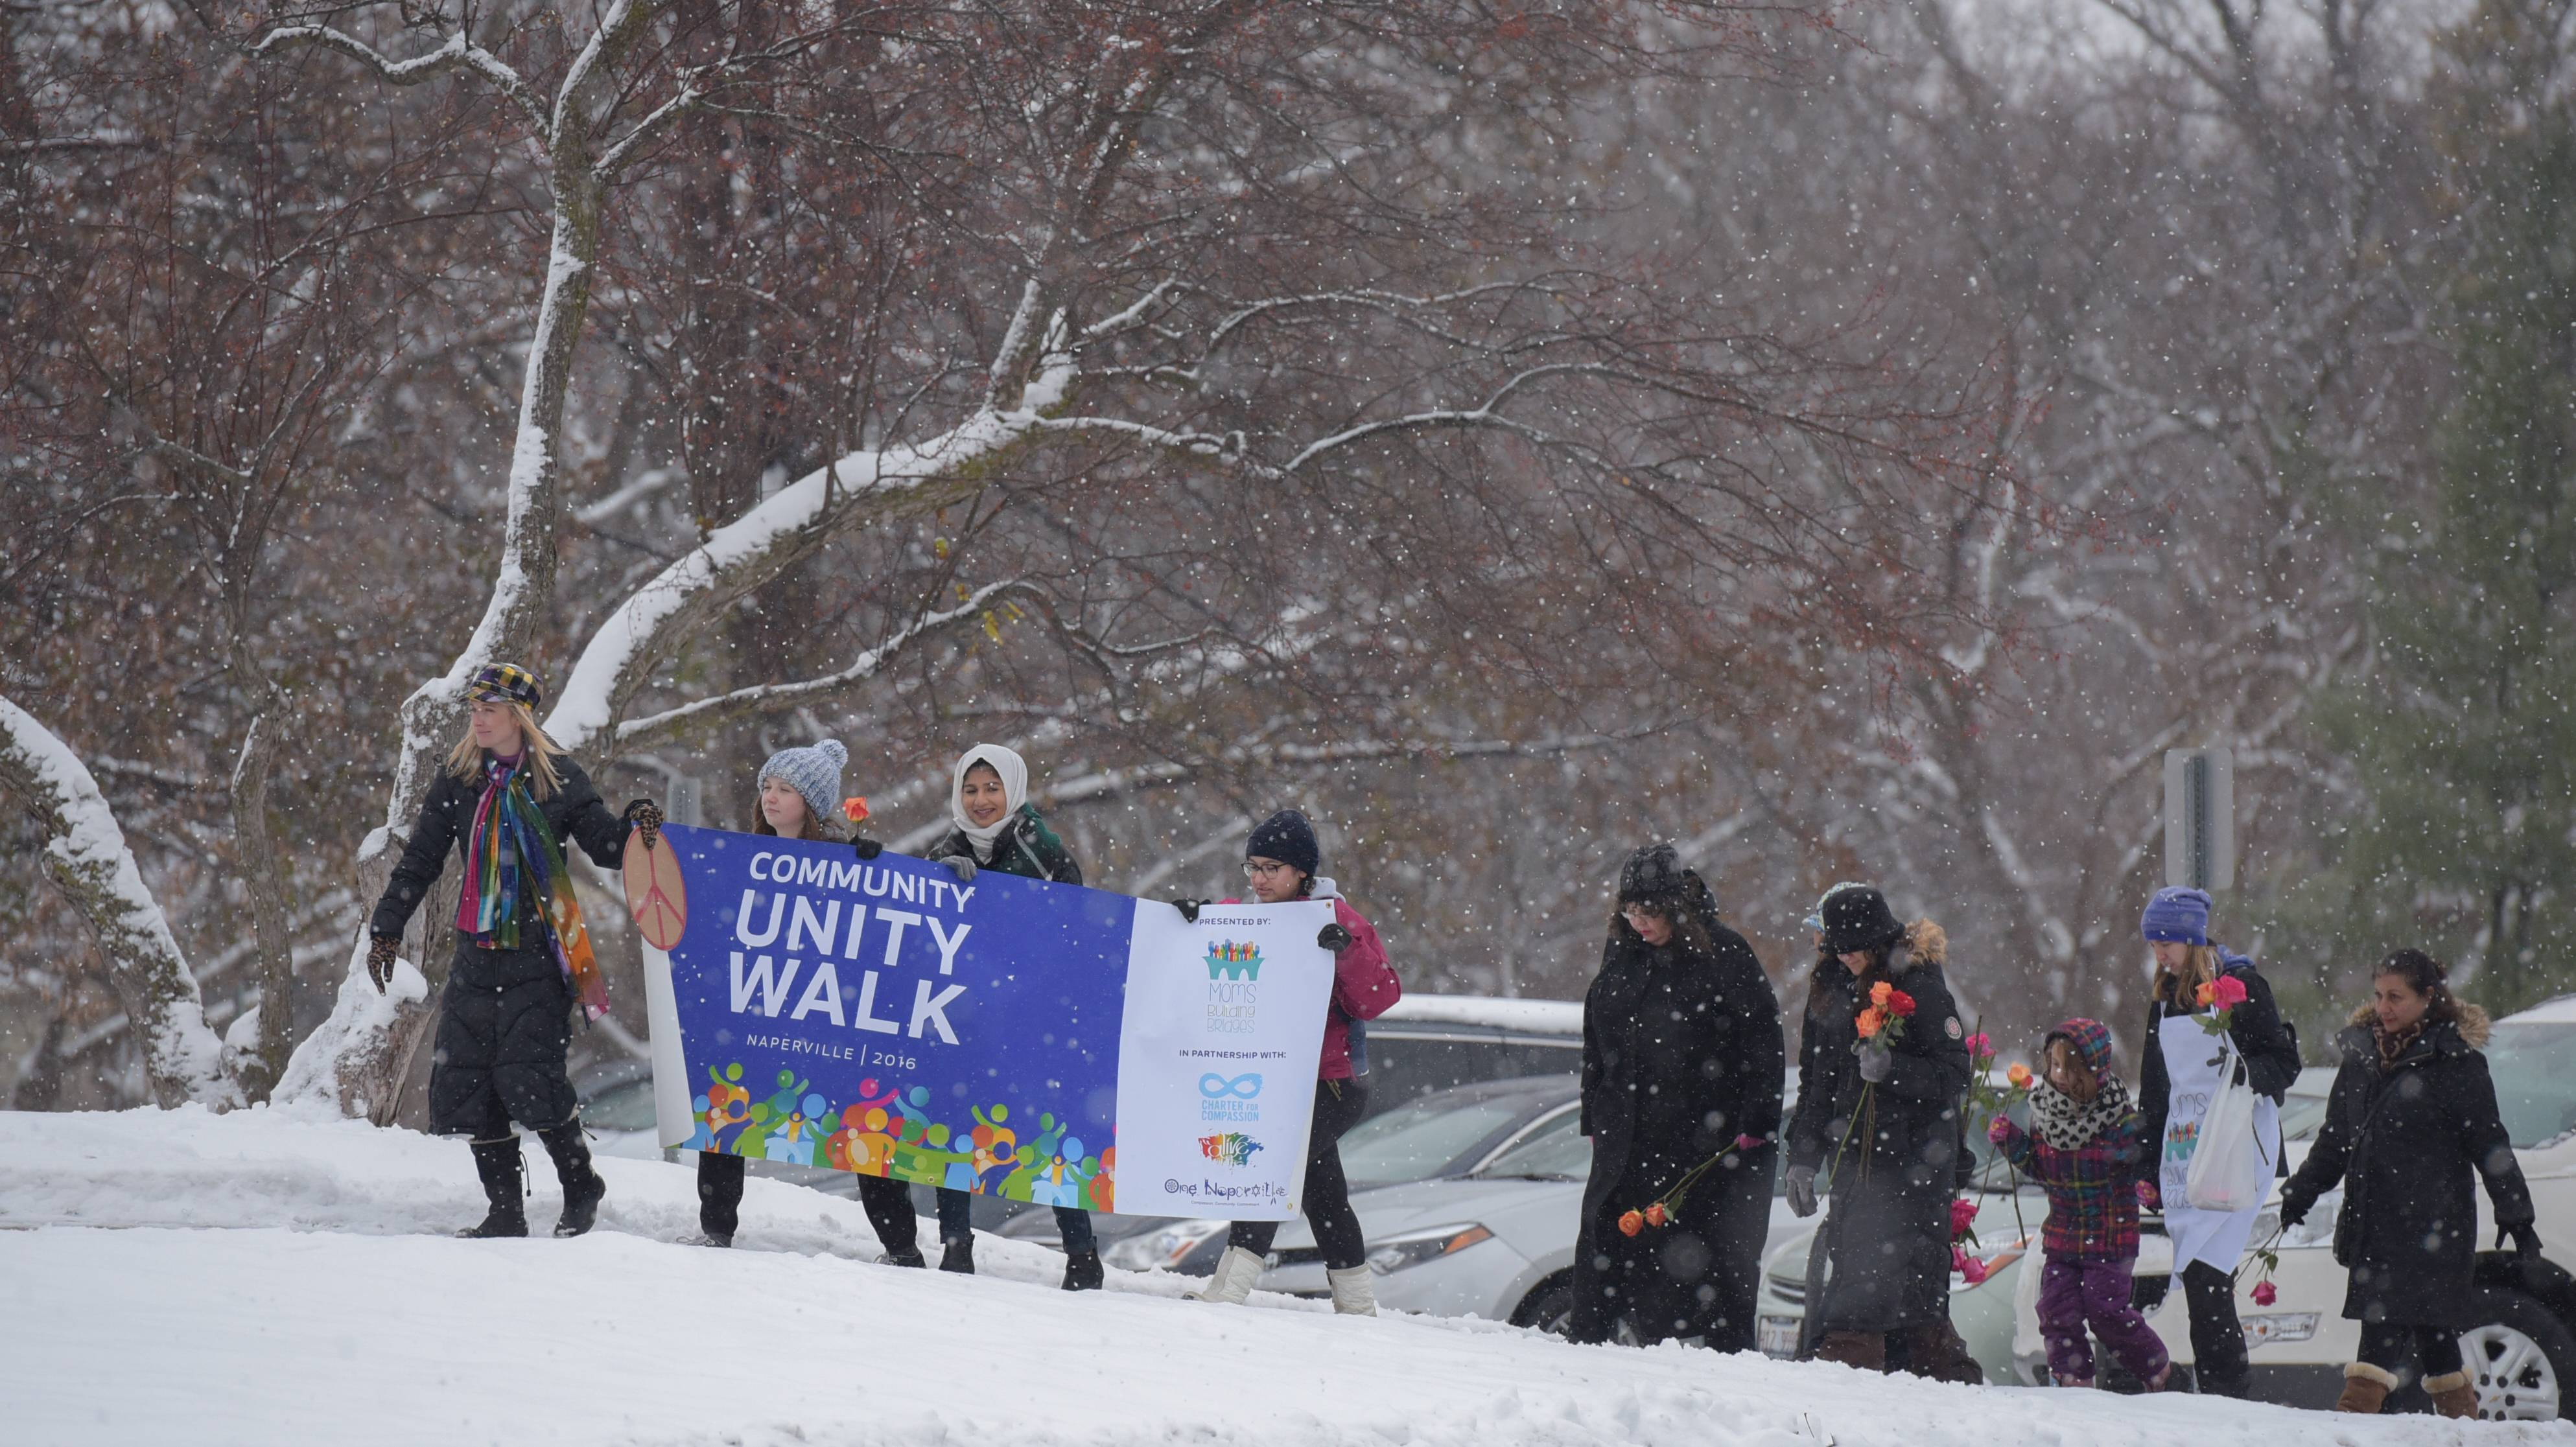 Walk aims to unify the Naperville community